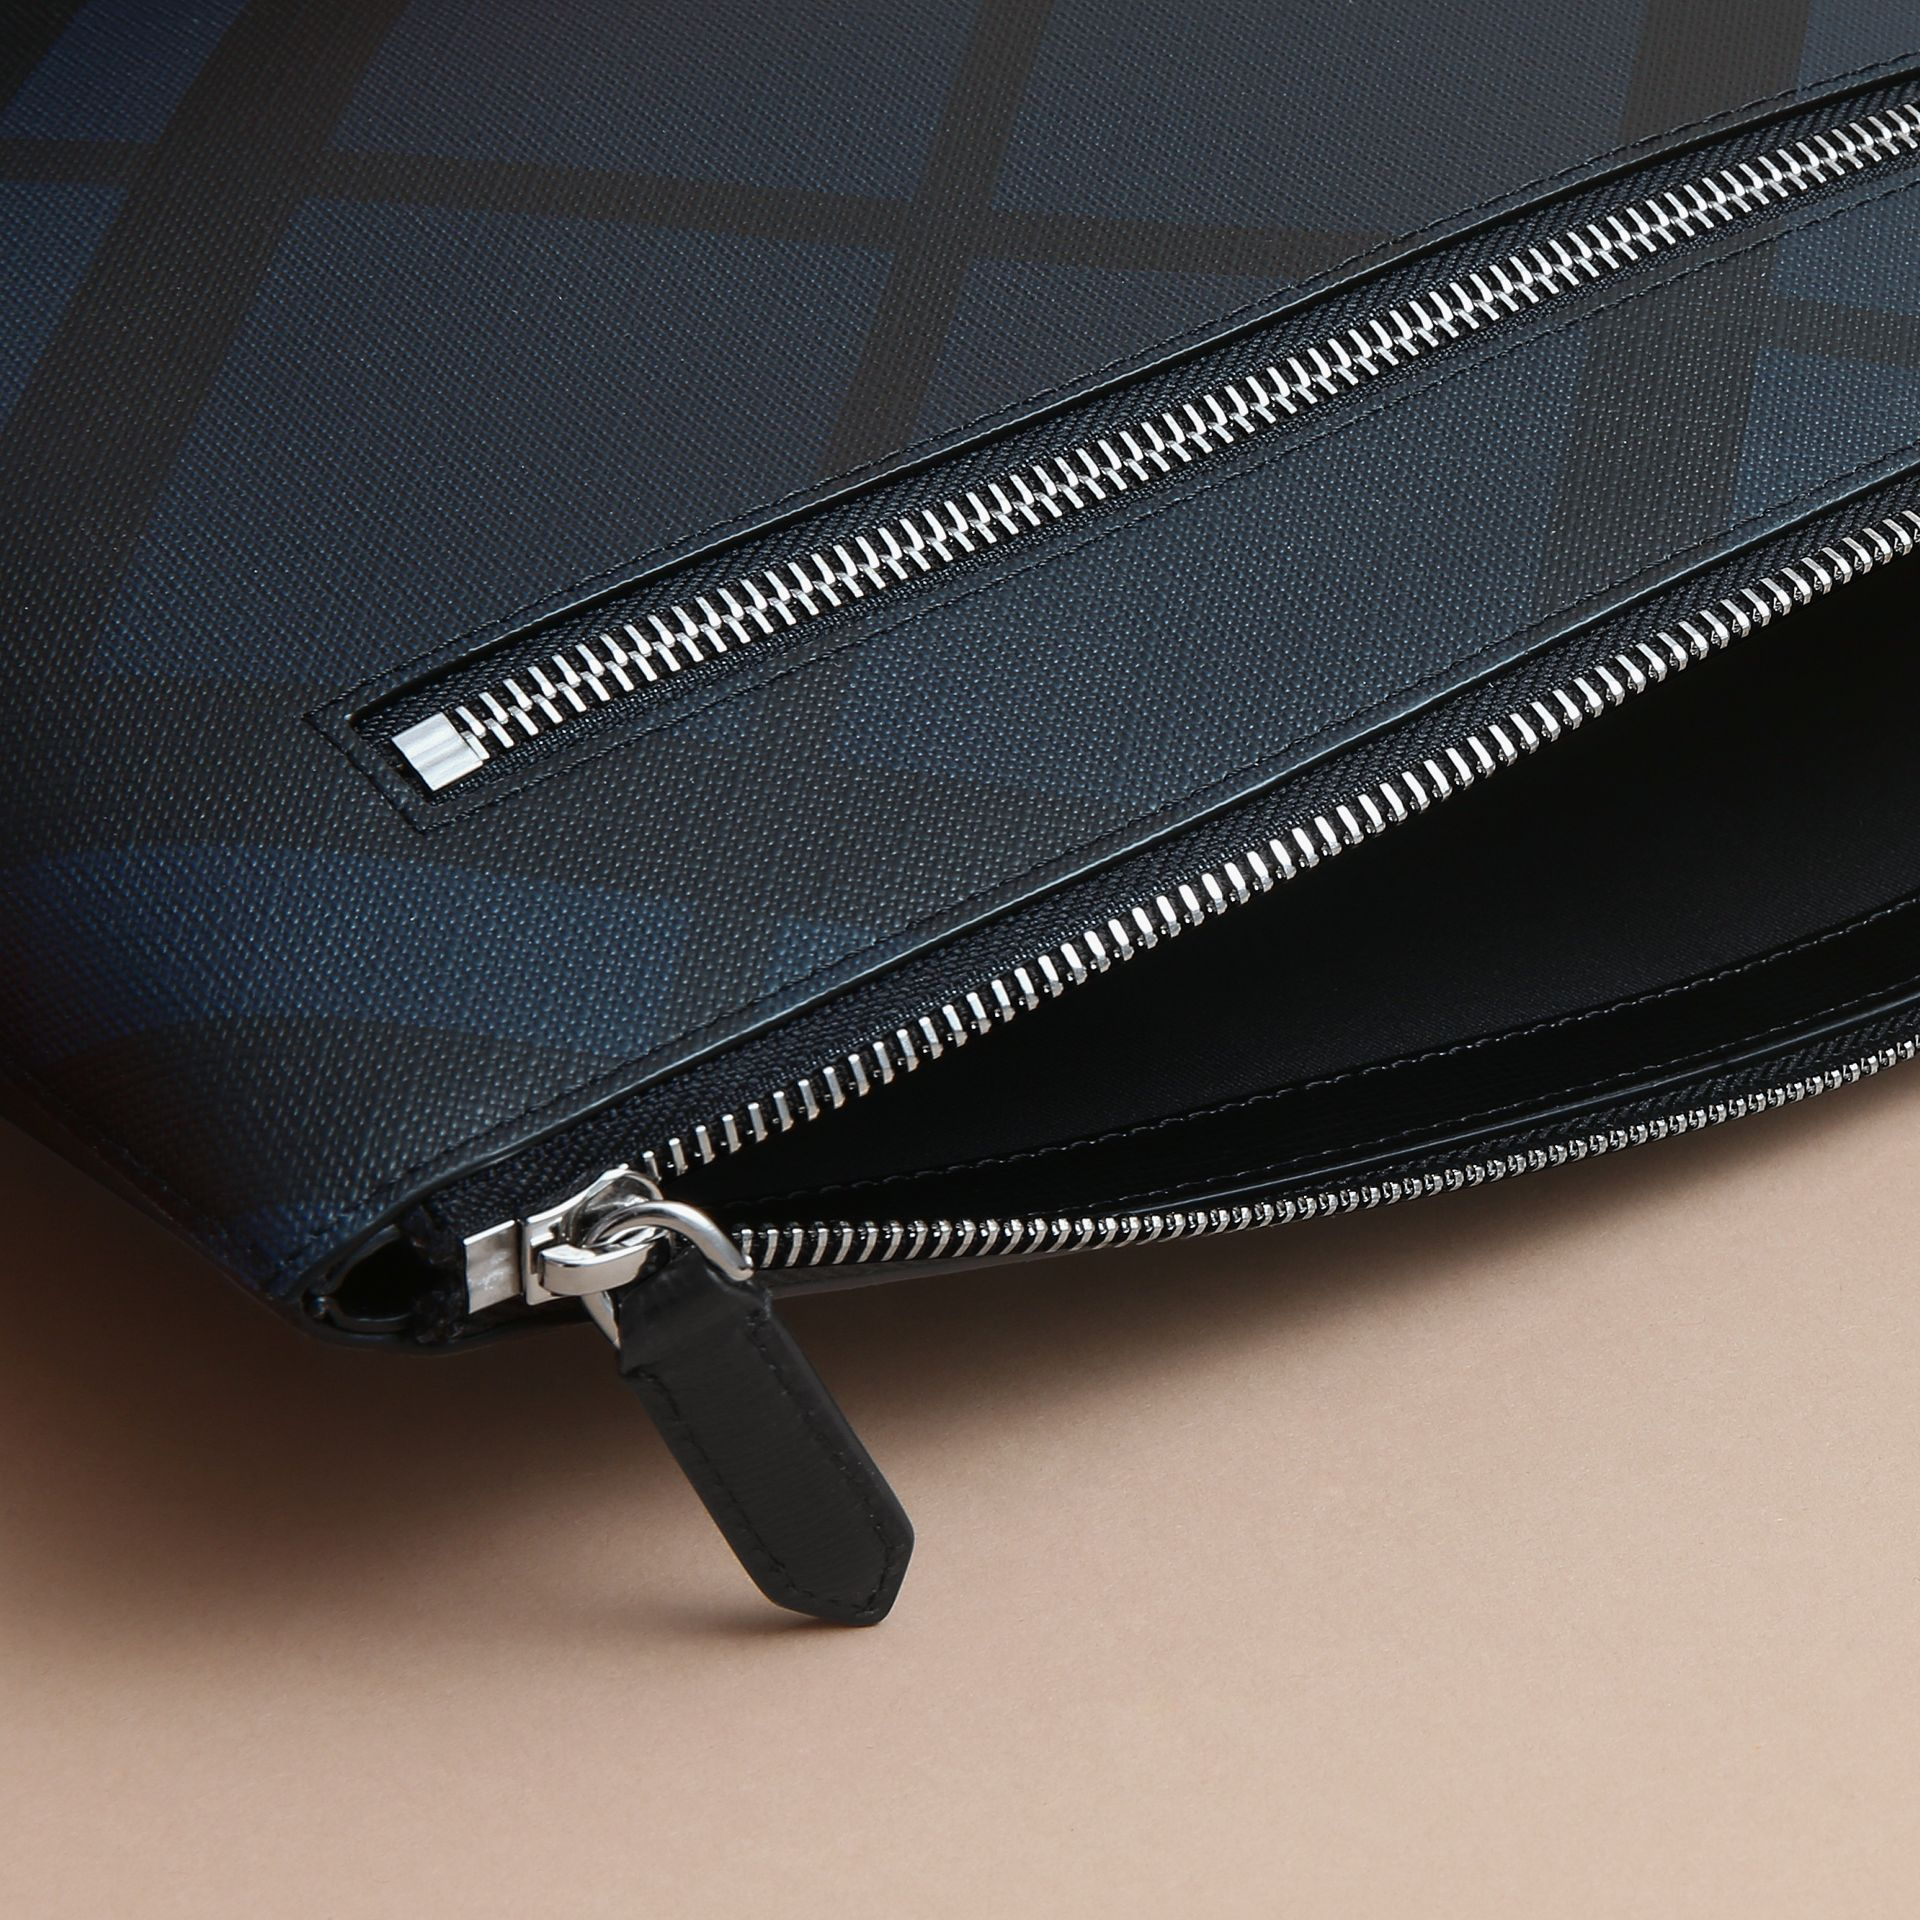 Large London Check Zip Pouch in Navy/black - Men | Burberry United Kingdom - gallery image 5